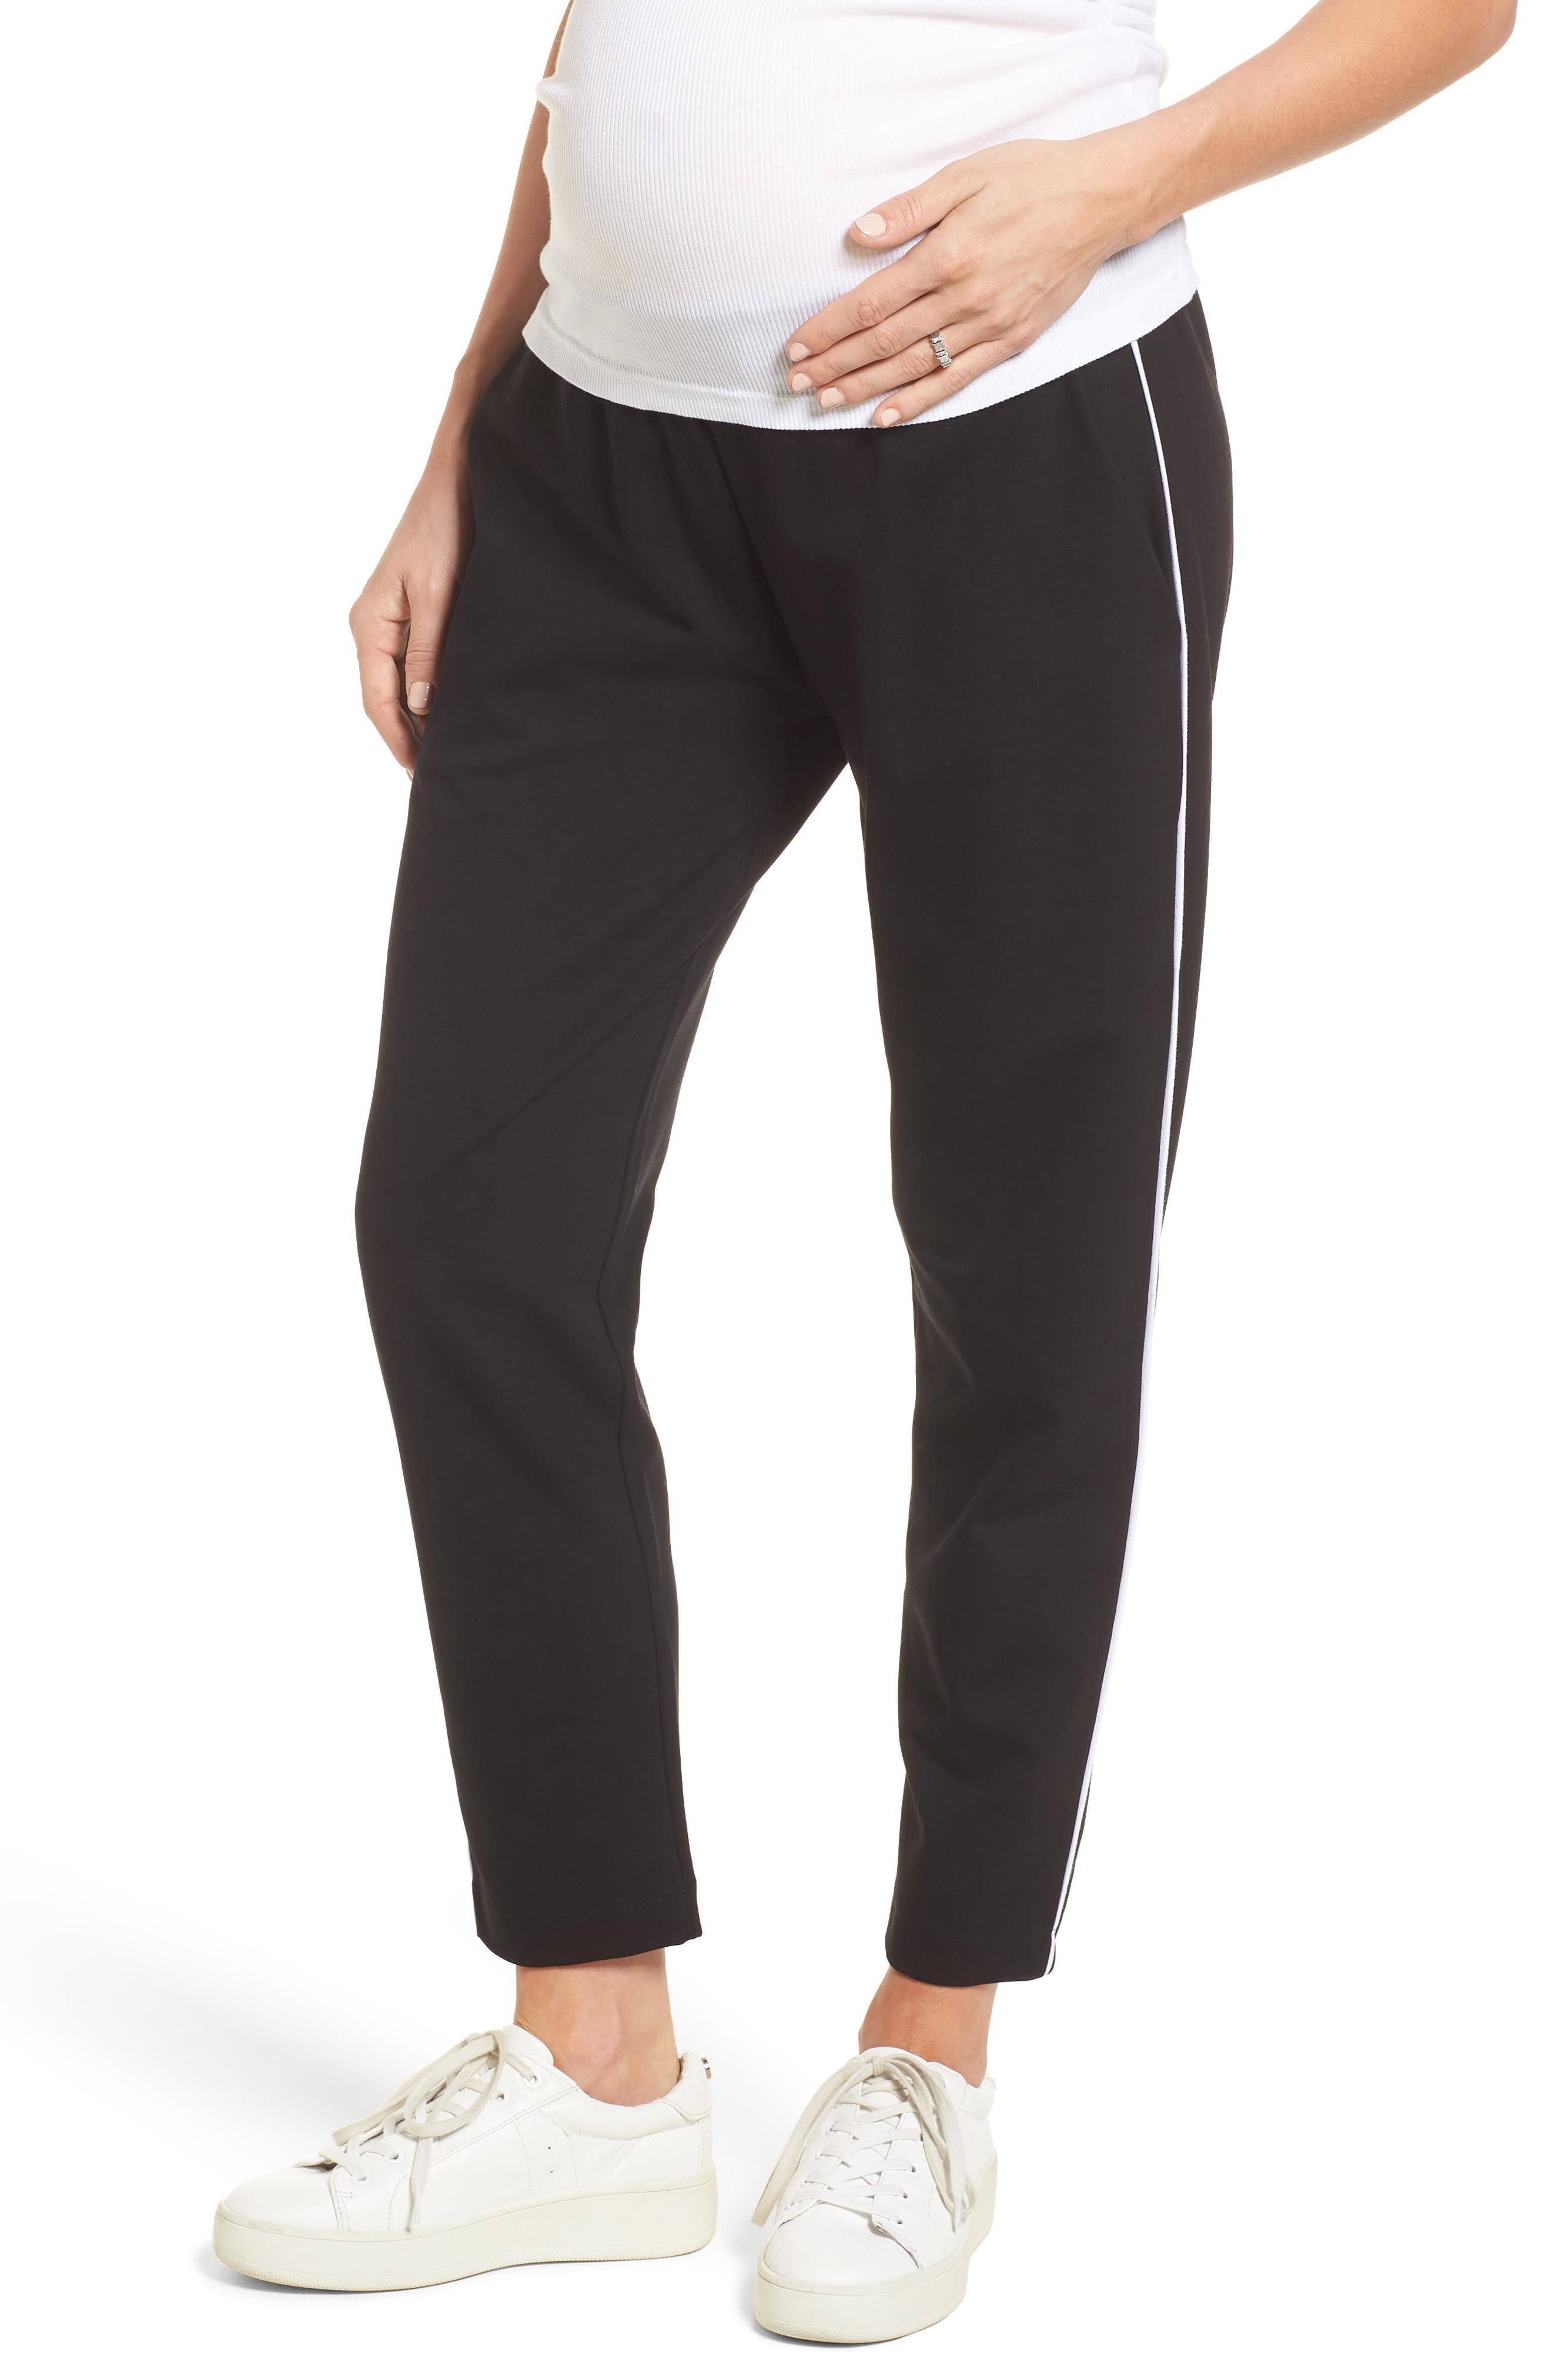 Women's Isabella Oliver Maxine Contrast Maternity Pants